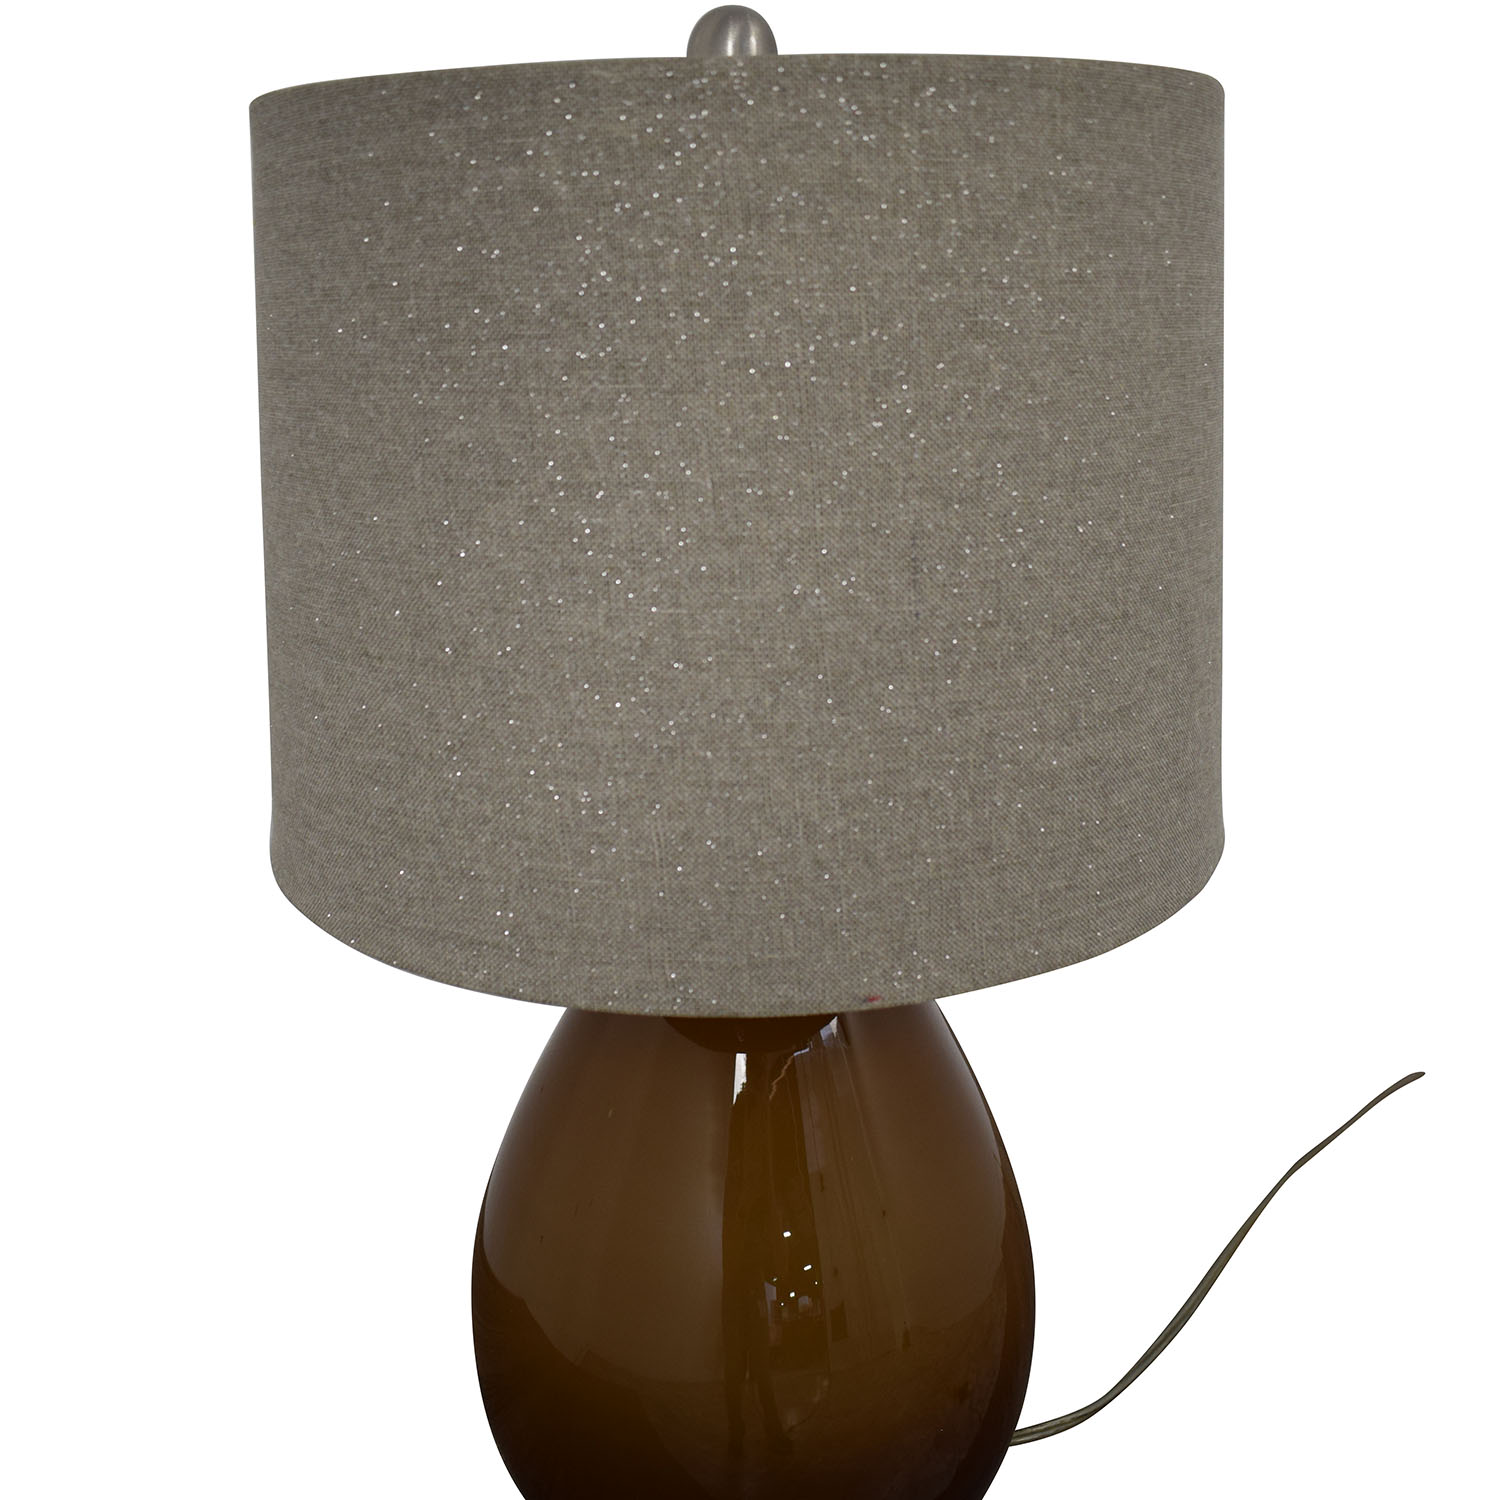 Crate & Barrel Crate & Barrel Table Lamp for sale